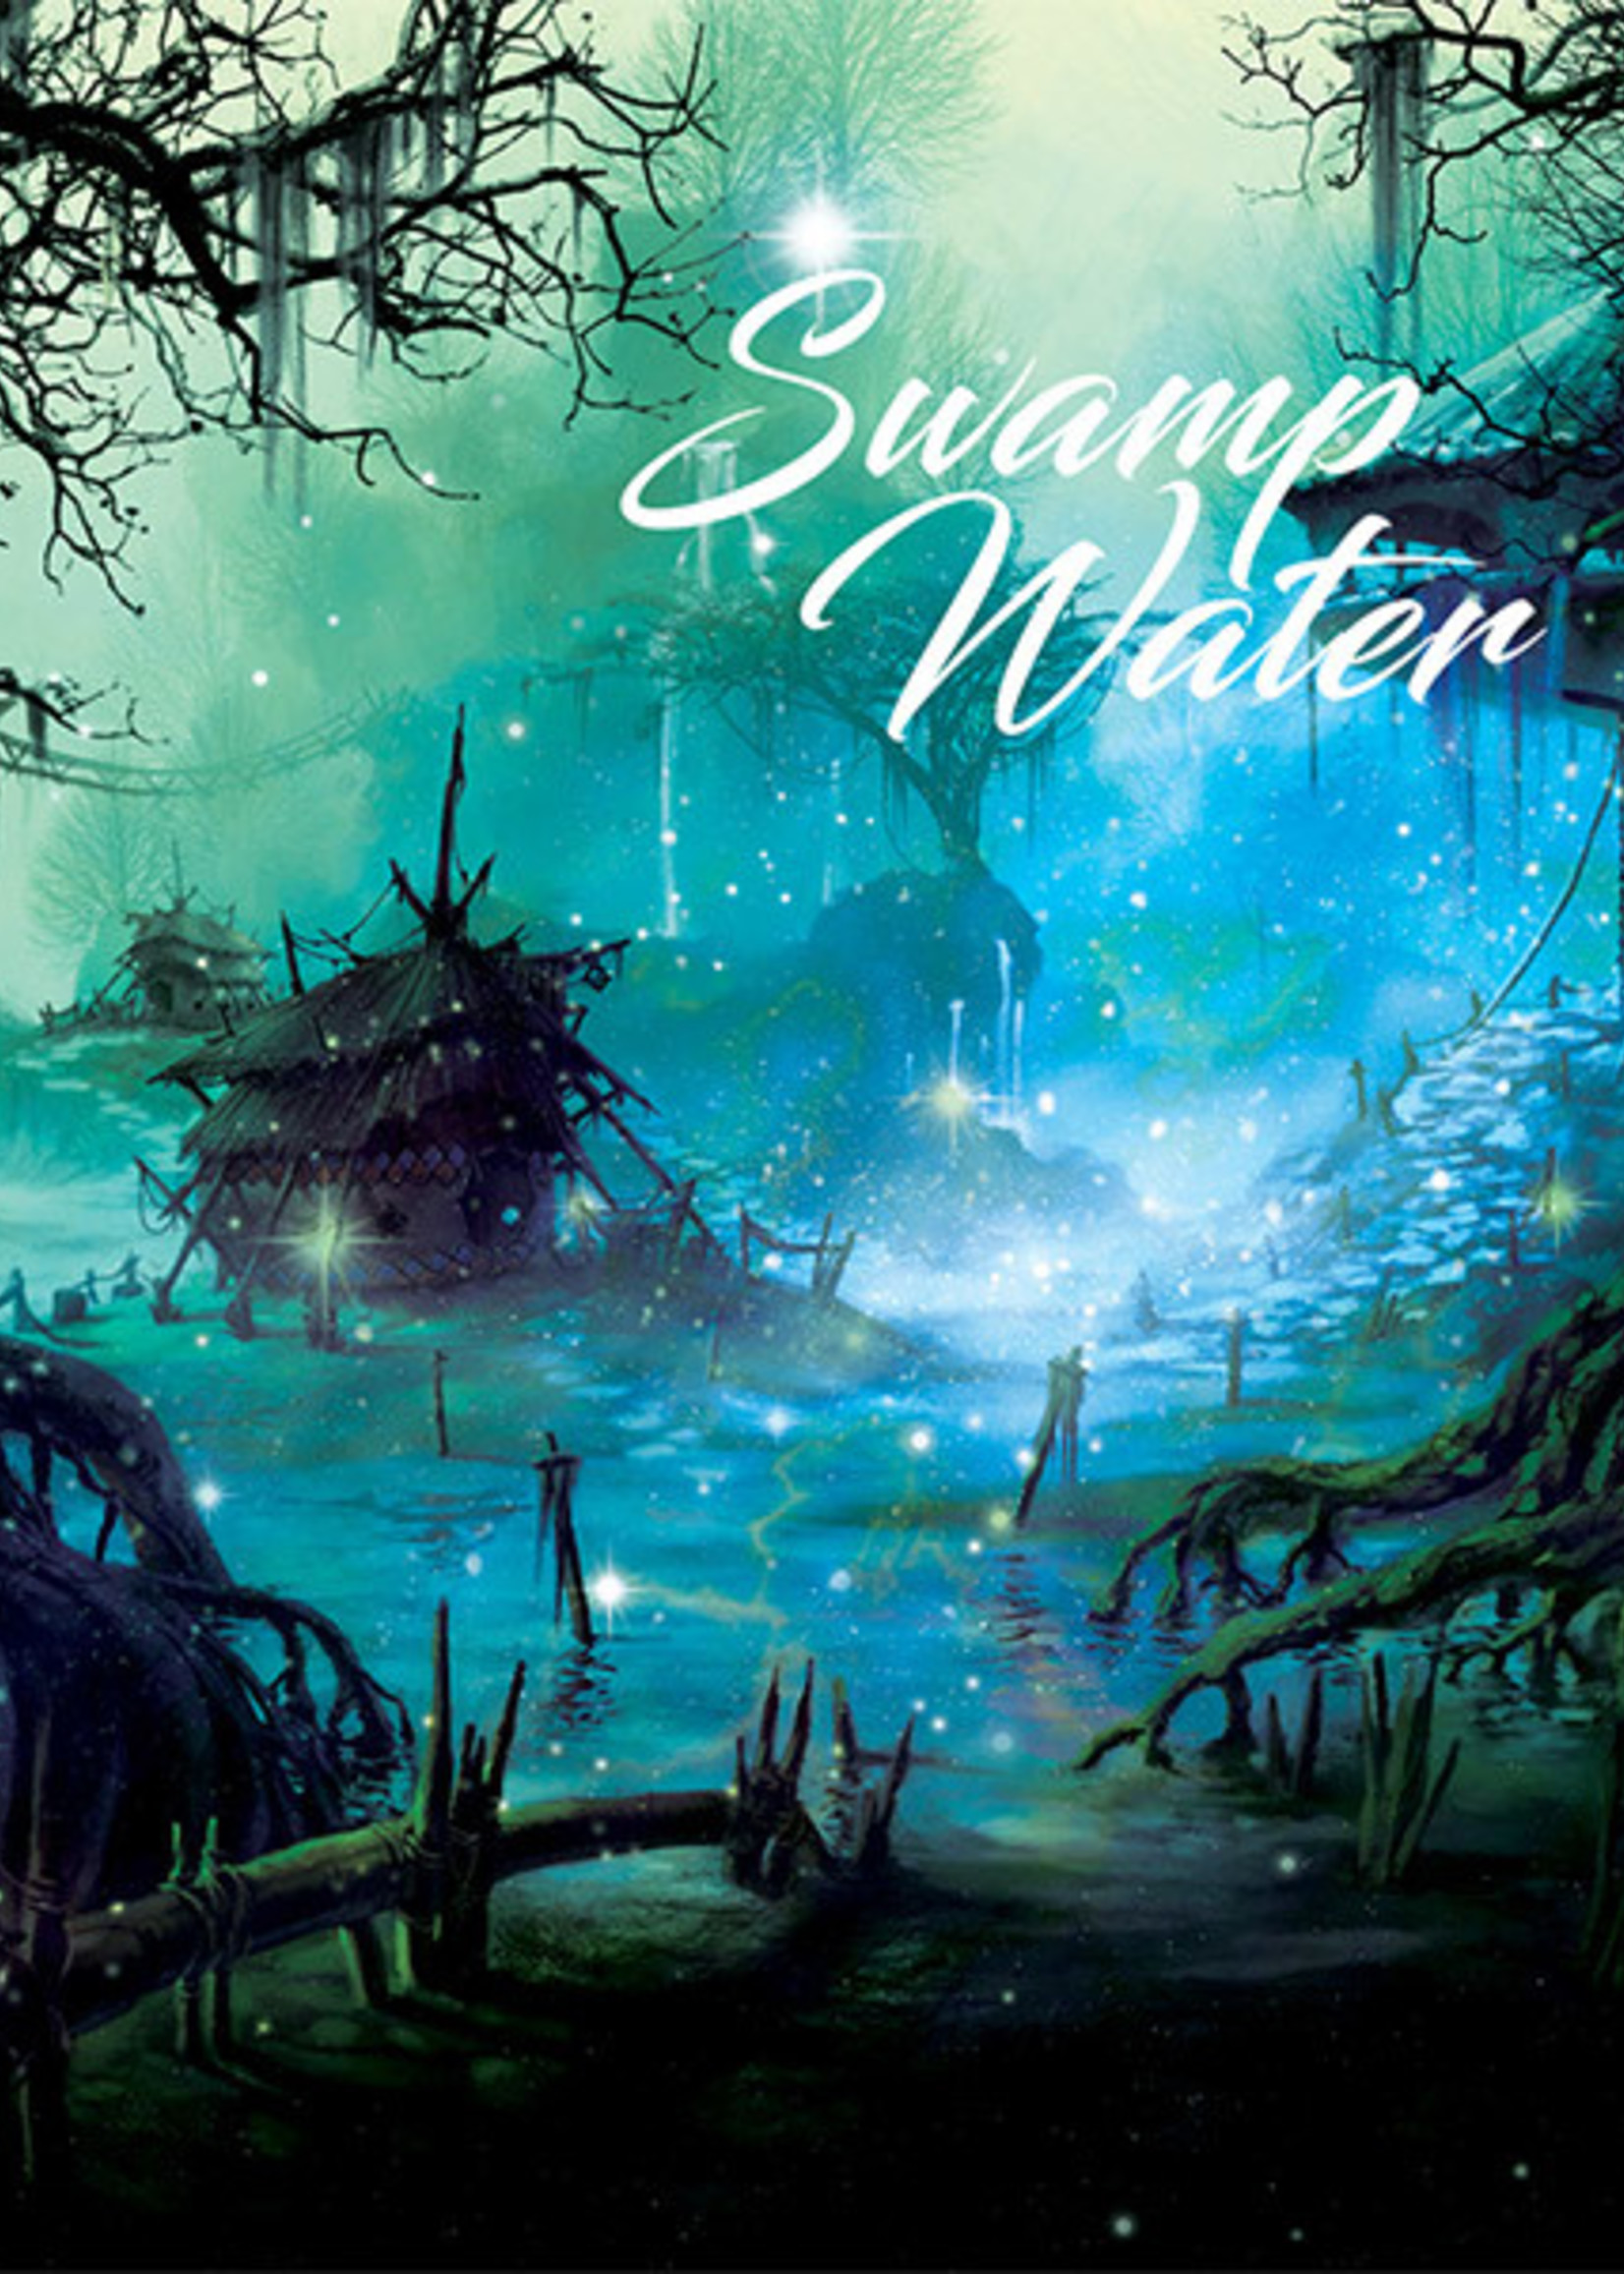 Great Canadian Fog Swamp Water